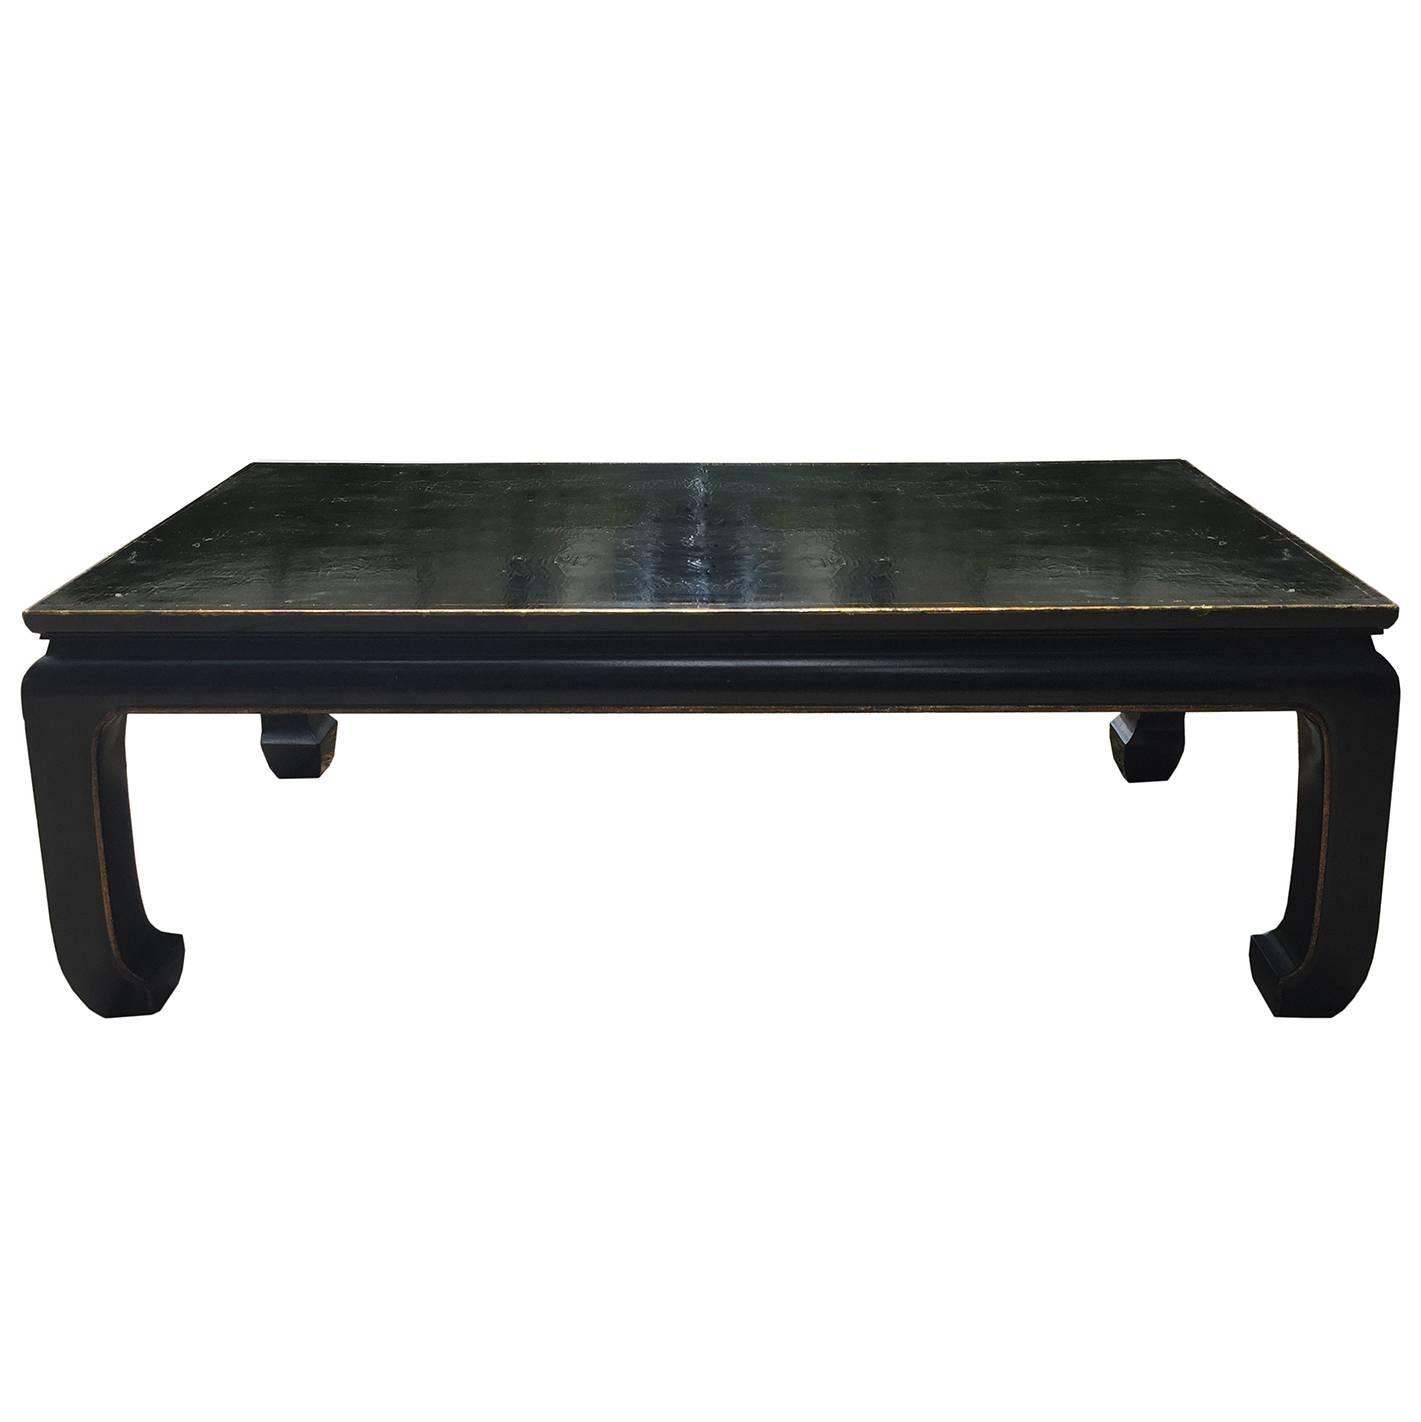 20th Century Superior Quality Black Lacquered Coffee Table At 1stdibs